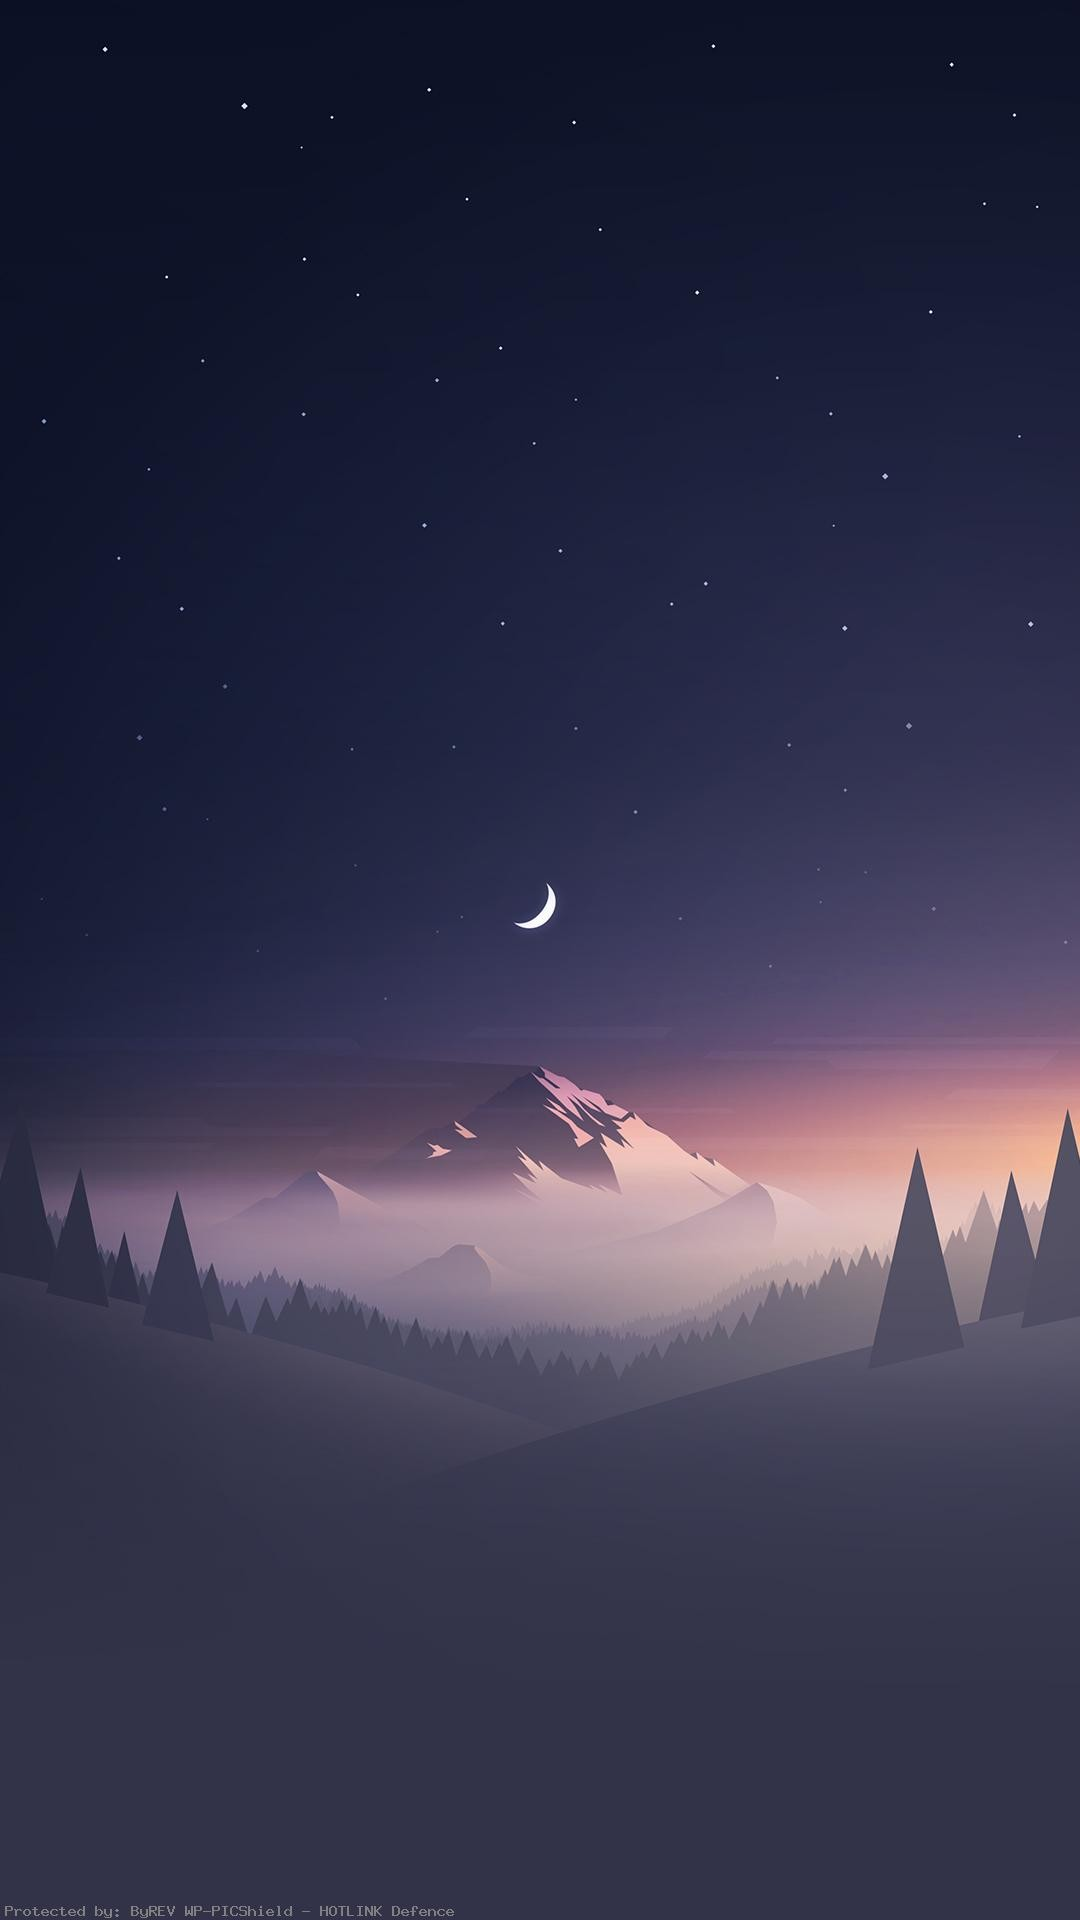 Stars-And-Moon-Winter-Mountain-Landscape-iPhone-HD-